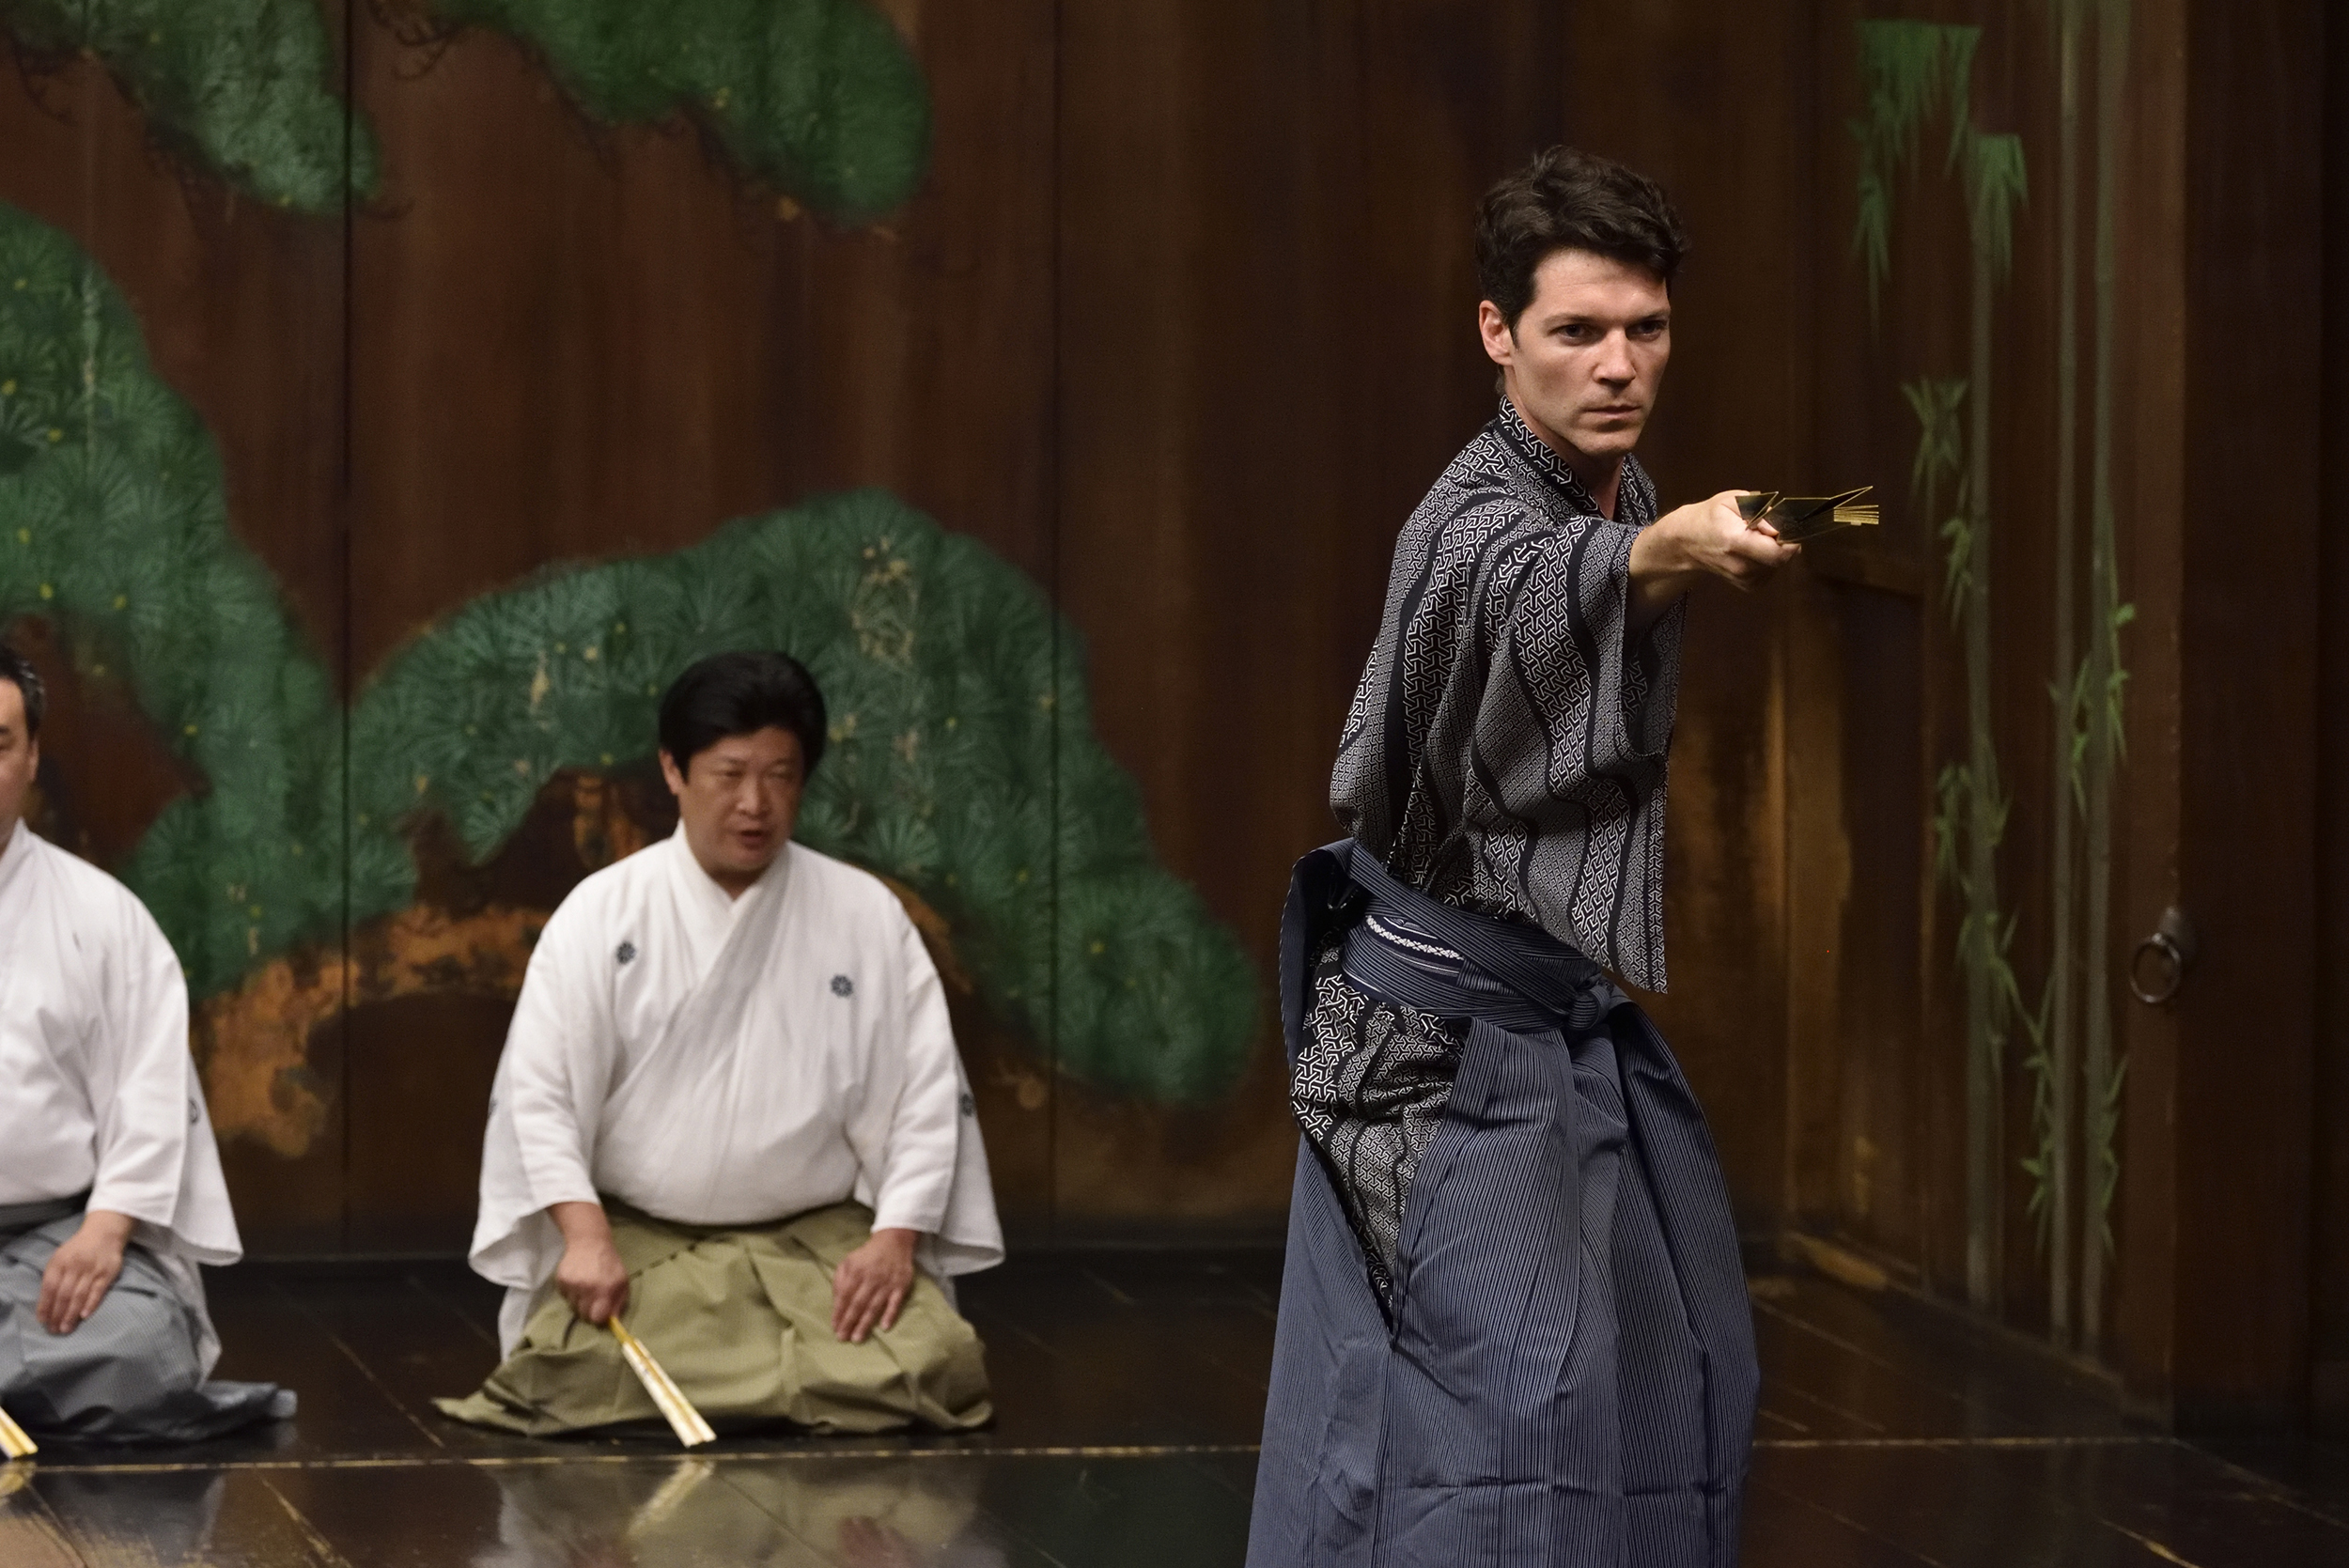 Marc Callahan performs a Japanese dance called a shimae